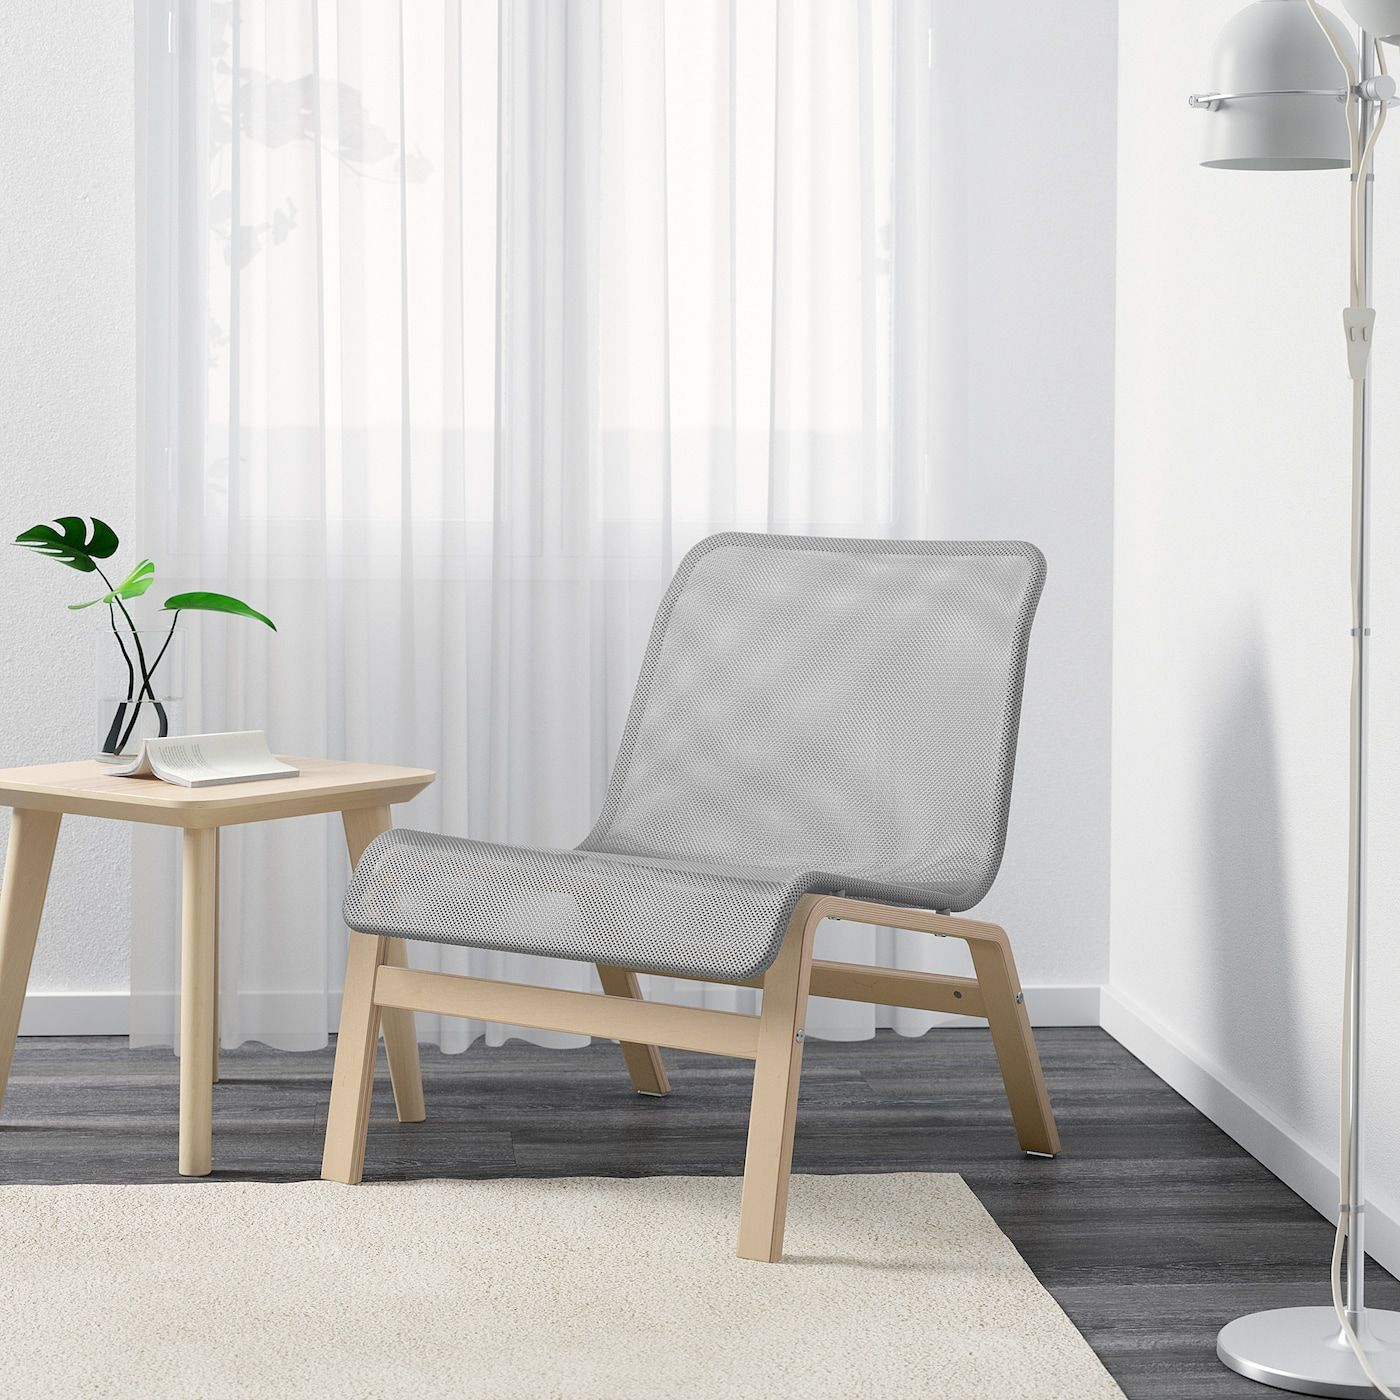 NOLMYRA Chair birch veneer, gray IKEA in 2020 Fabric